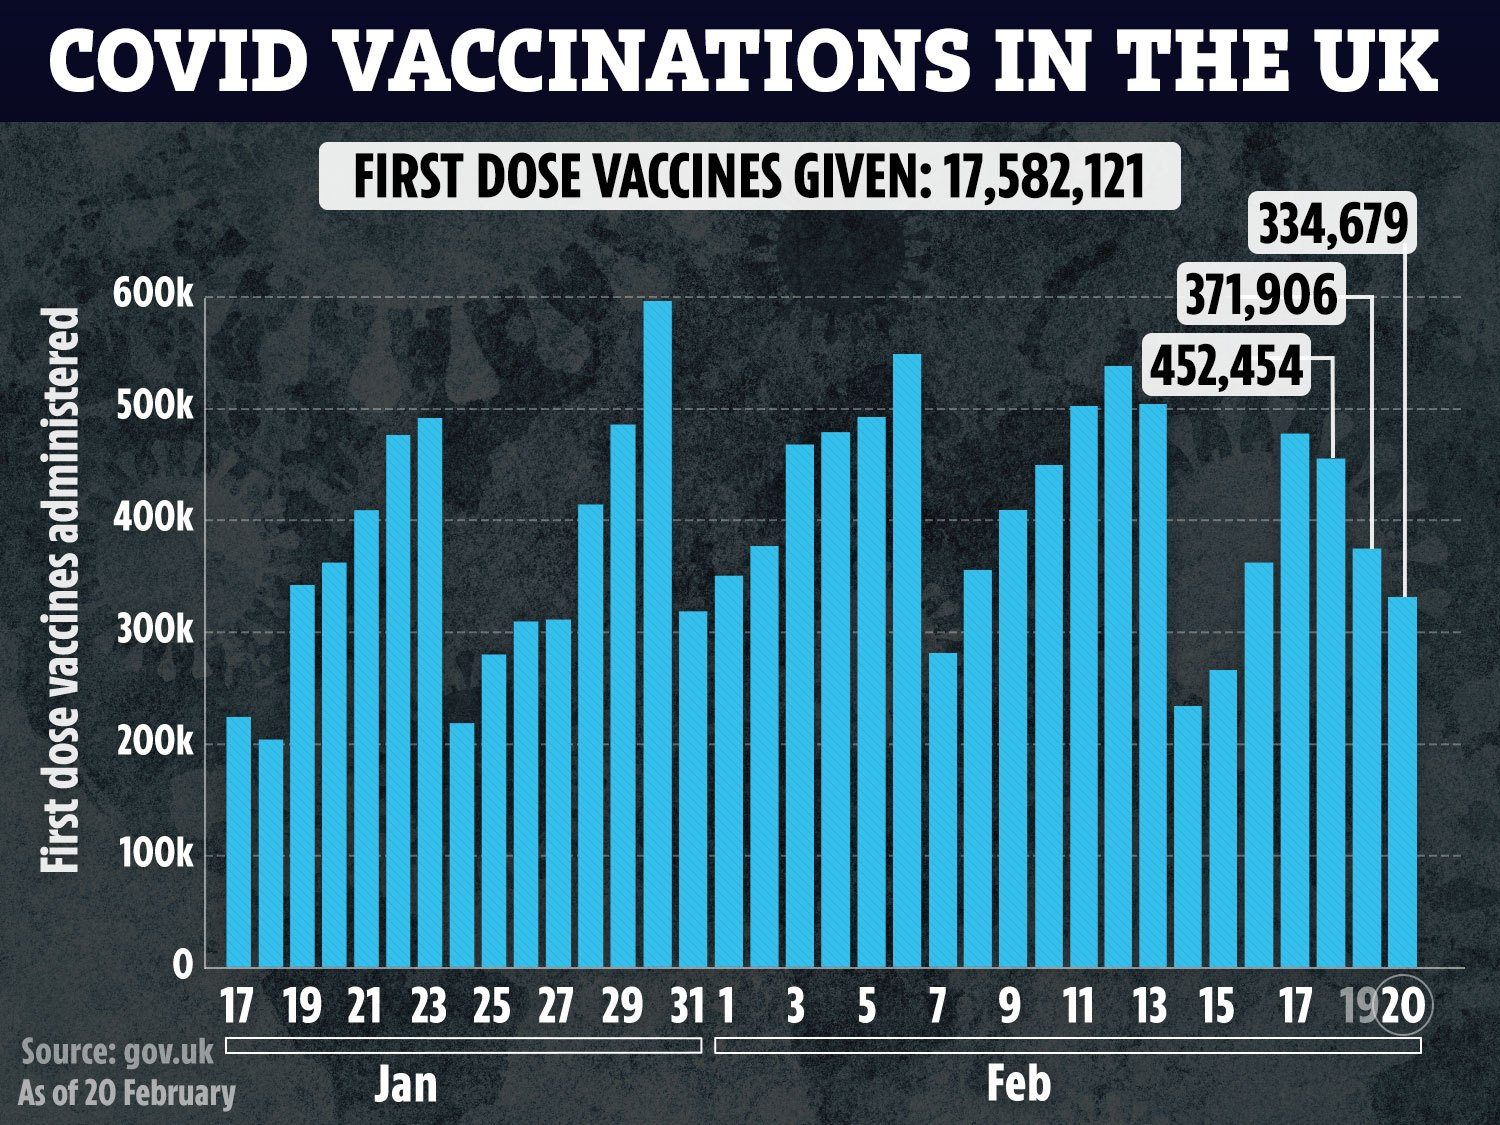 Millions have already been vaccinated giving the hospitality industry hope for reopening sooner